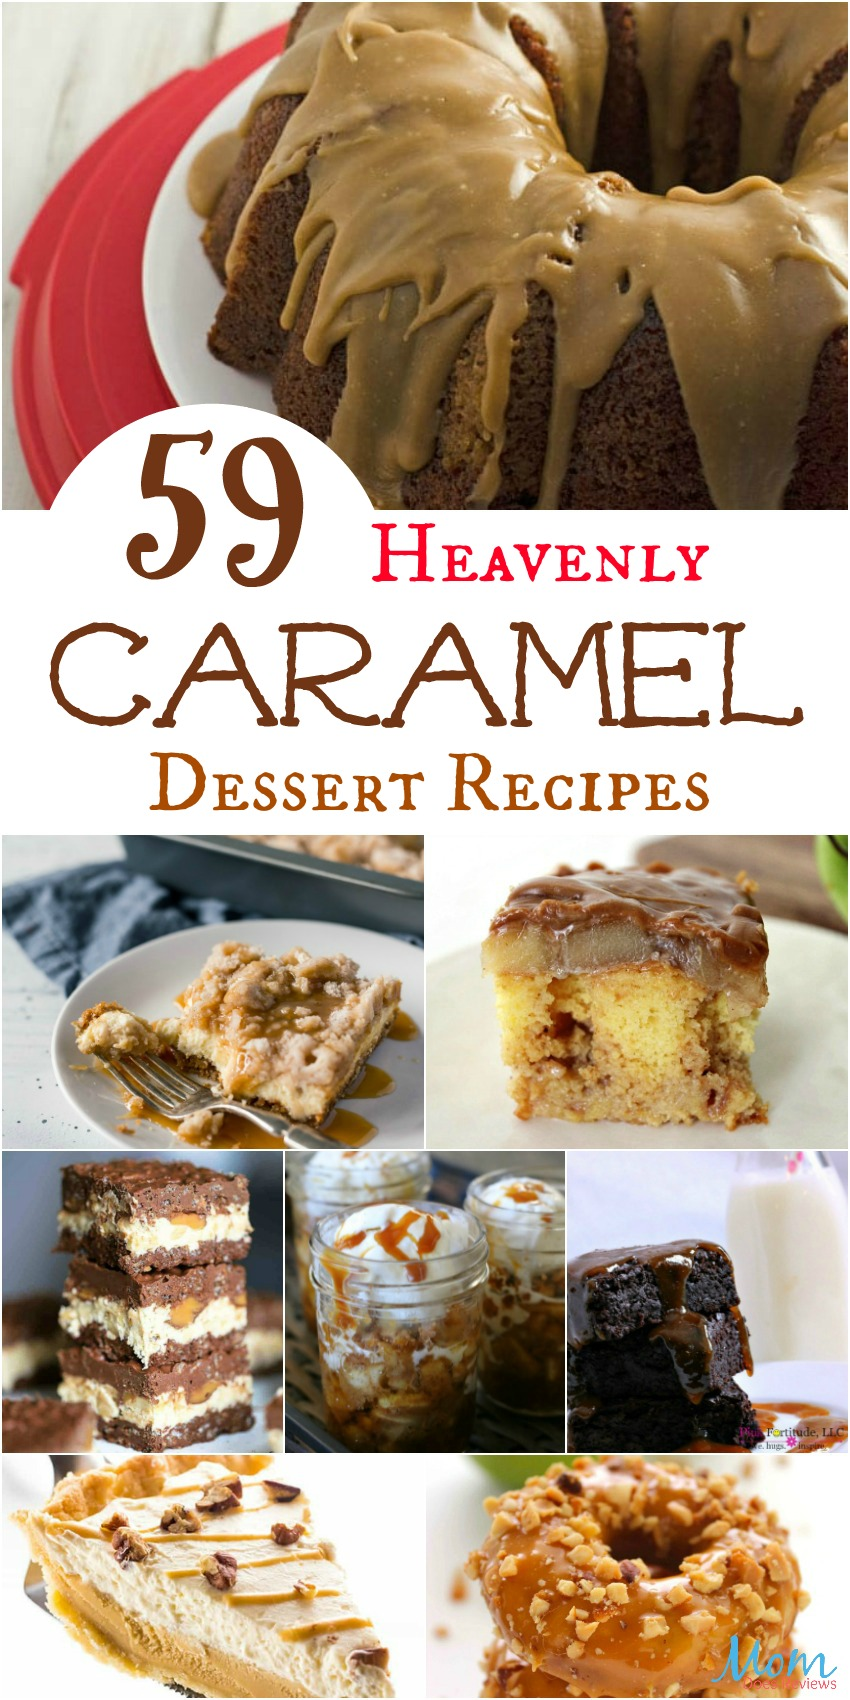 59 Heavenly Caramel Dessert Recipes Your Family Will Love #desserts #caramel #foodie #sweettreats